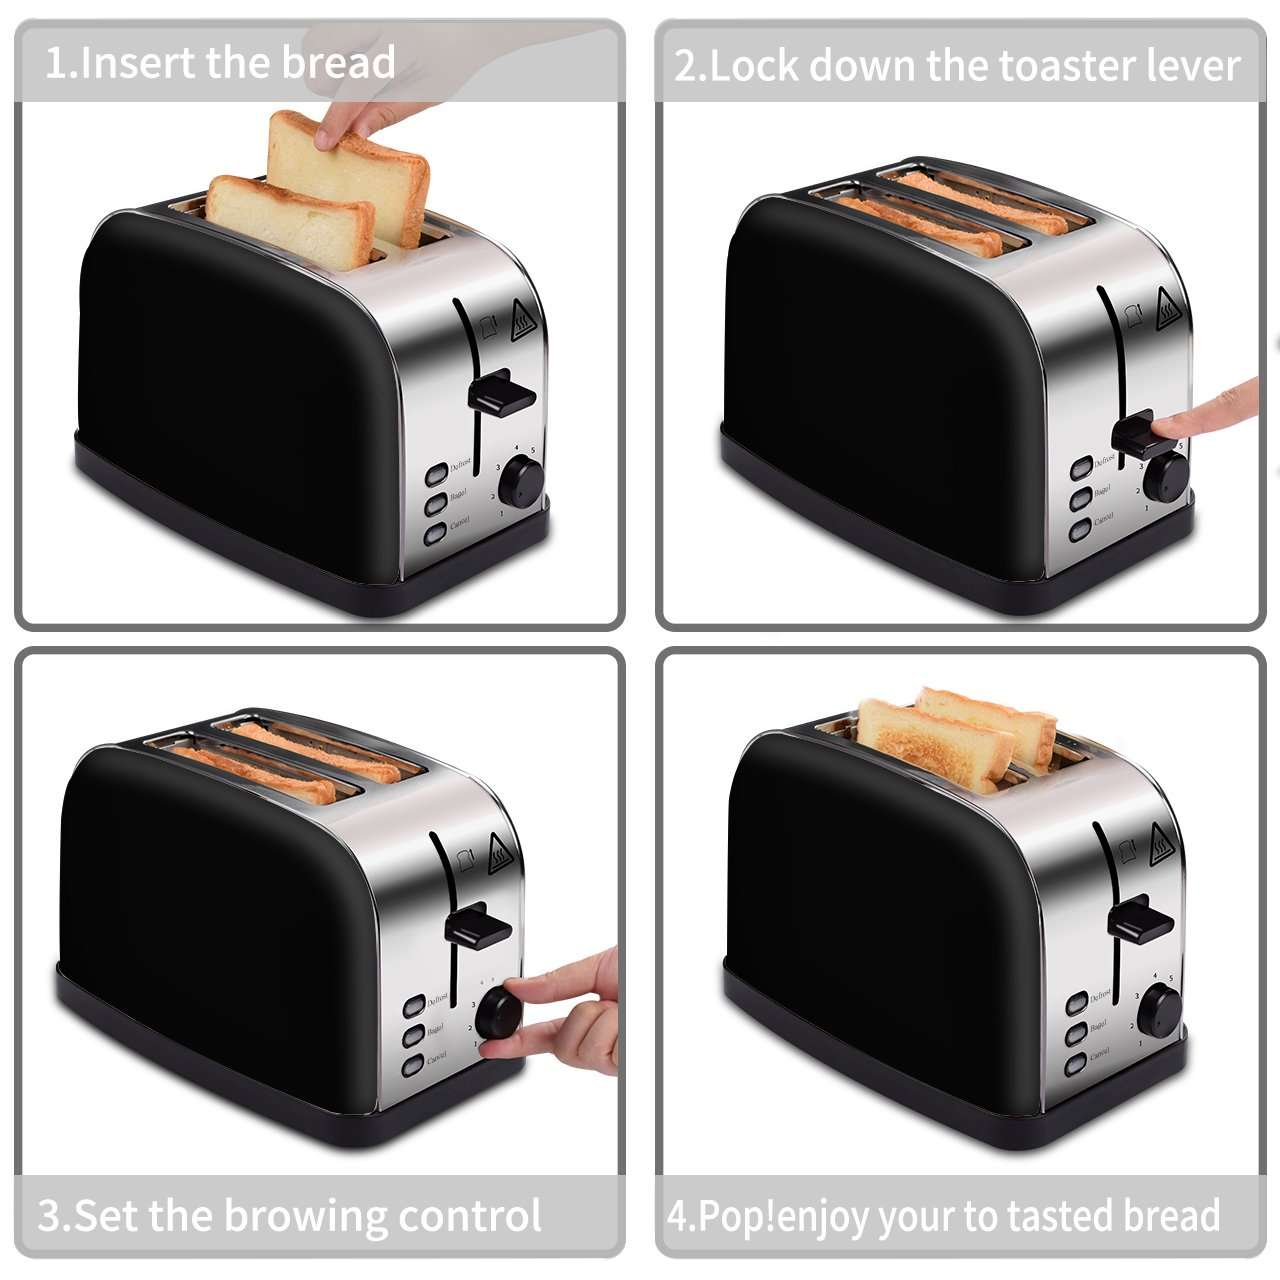 MADETEC 2 Slice Wide Slot Toaster for Bread Bagel, Brushed Stainless Steel Toaster with Removable Crumb Tray,High Lift Lever, Defrost, Bagels and 7 Shade Setting (Black)